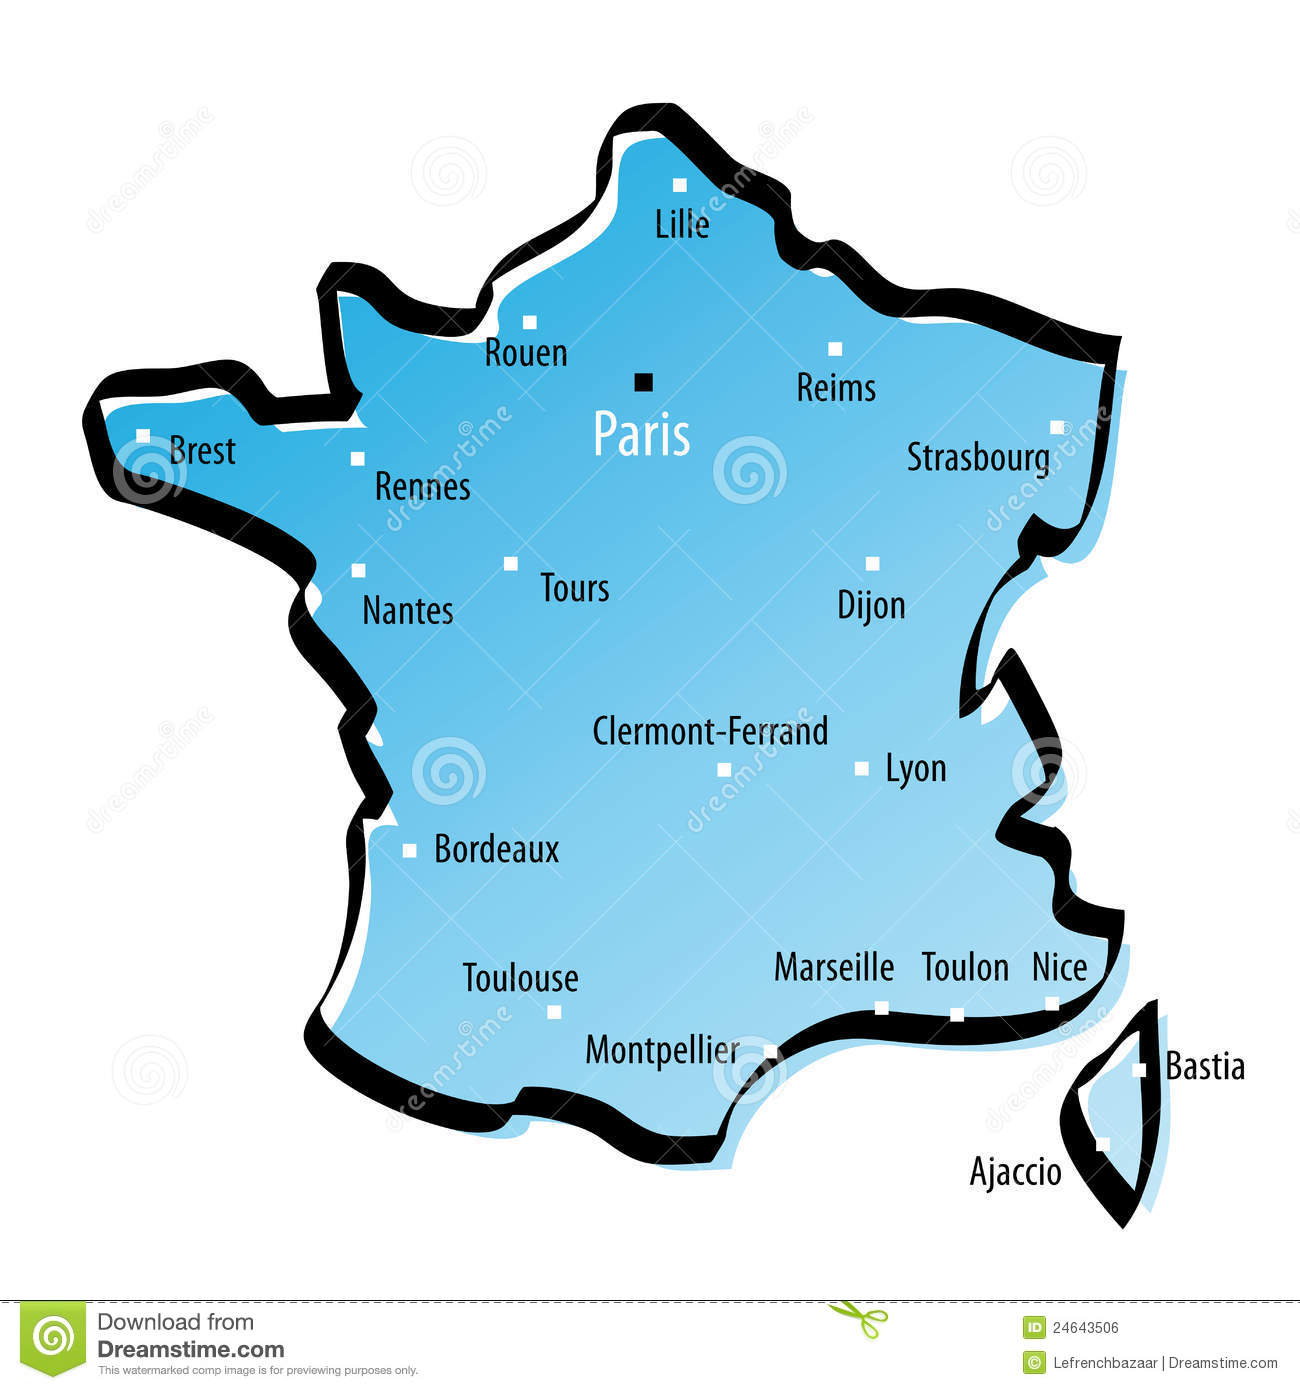 Map Of Major Cities In France.Stylized Map Of France Stock Vector Illustration Of Area 24643506